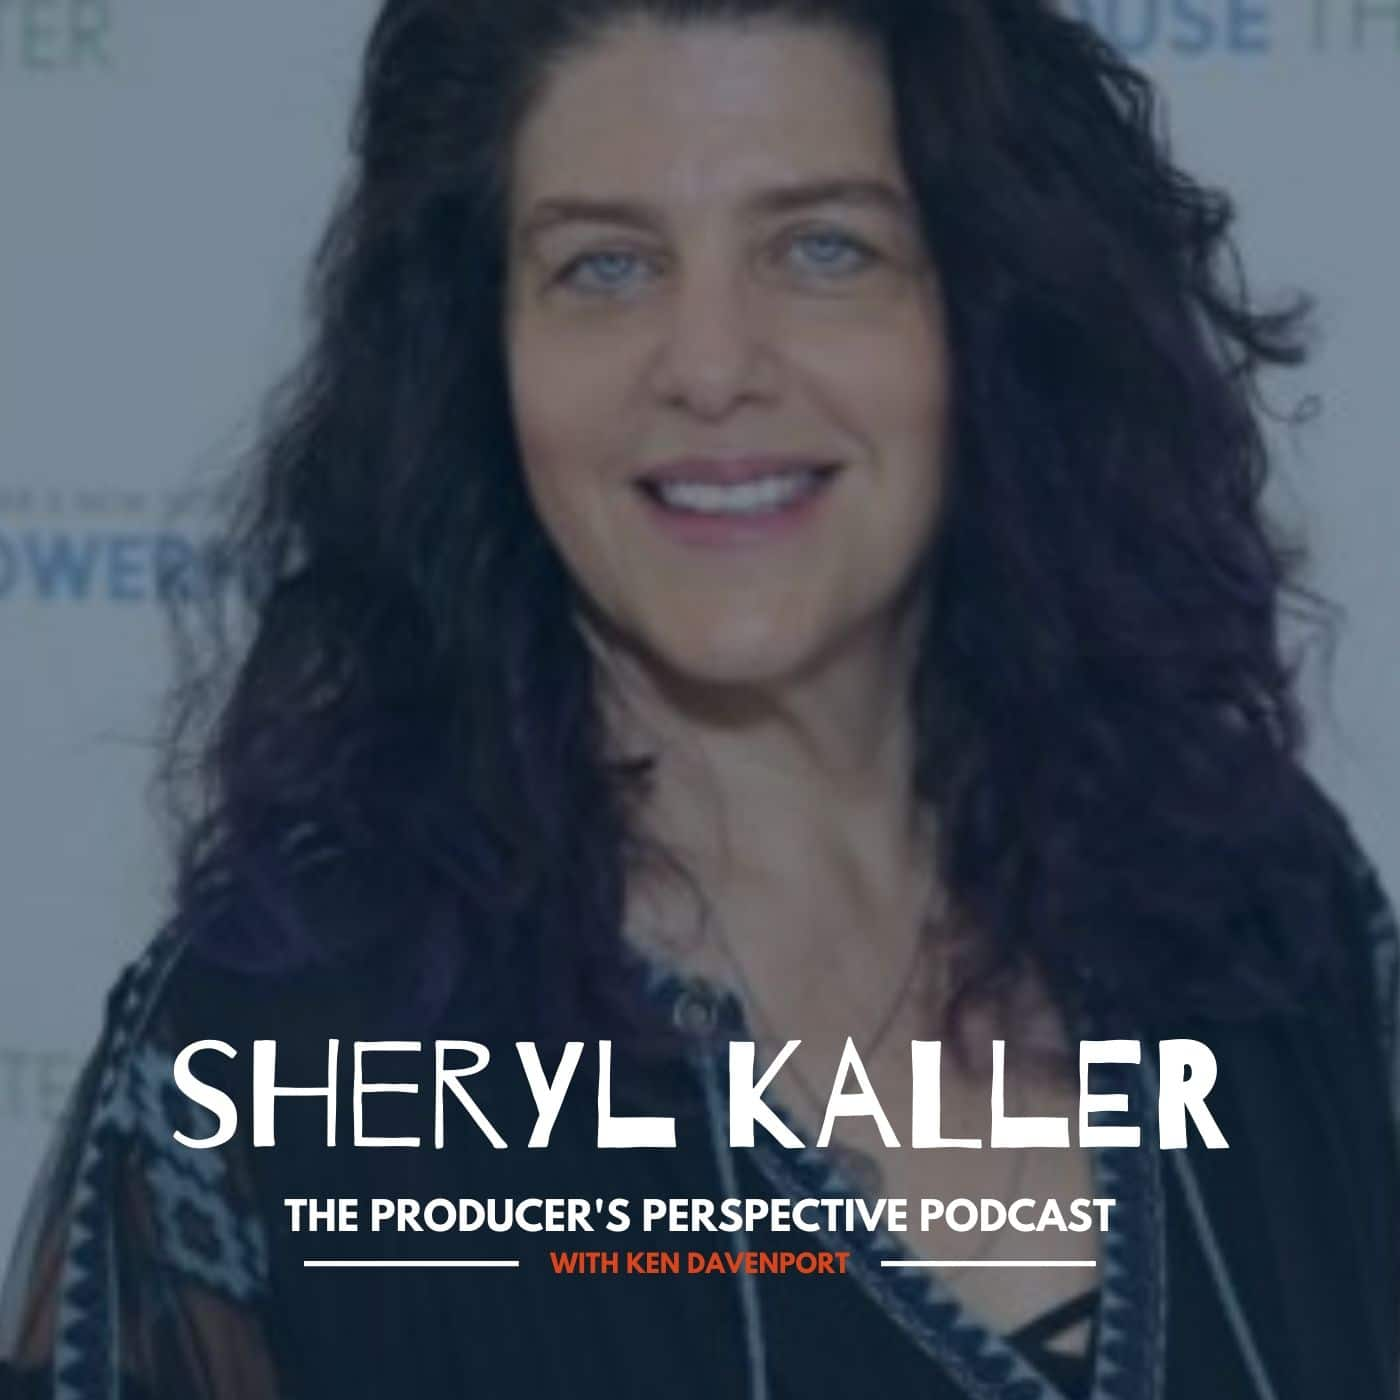 Ken Davenport's The Producer's Perspective Podcast Episode 146 - Sheryl Kaller